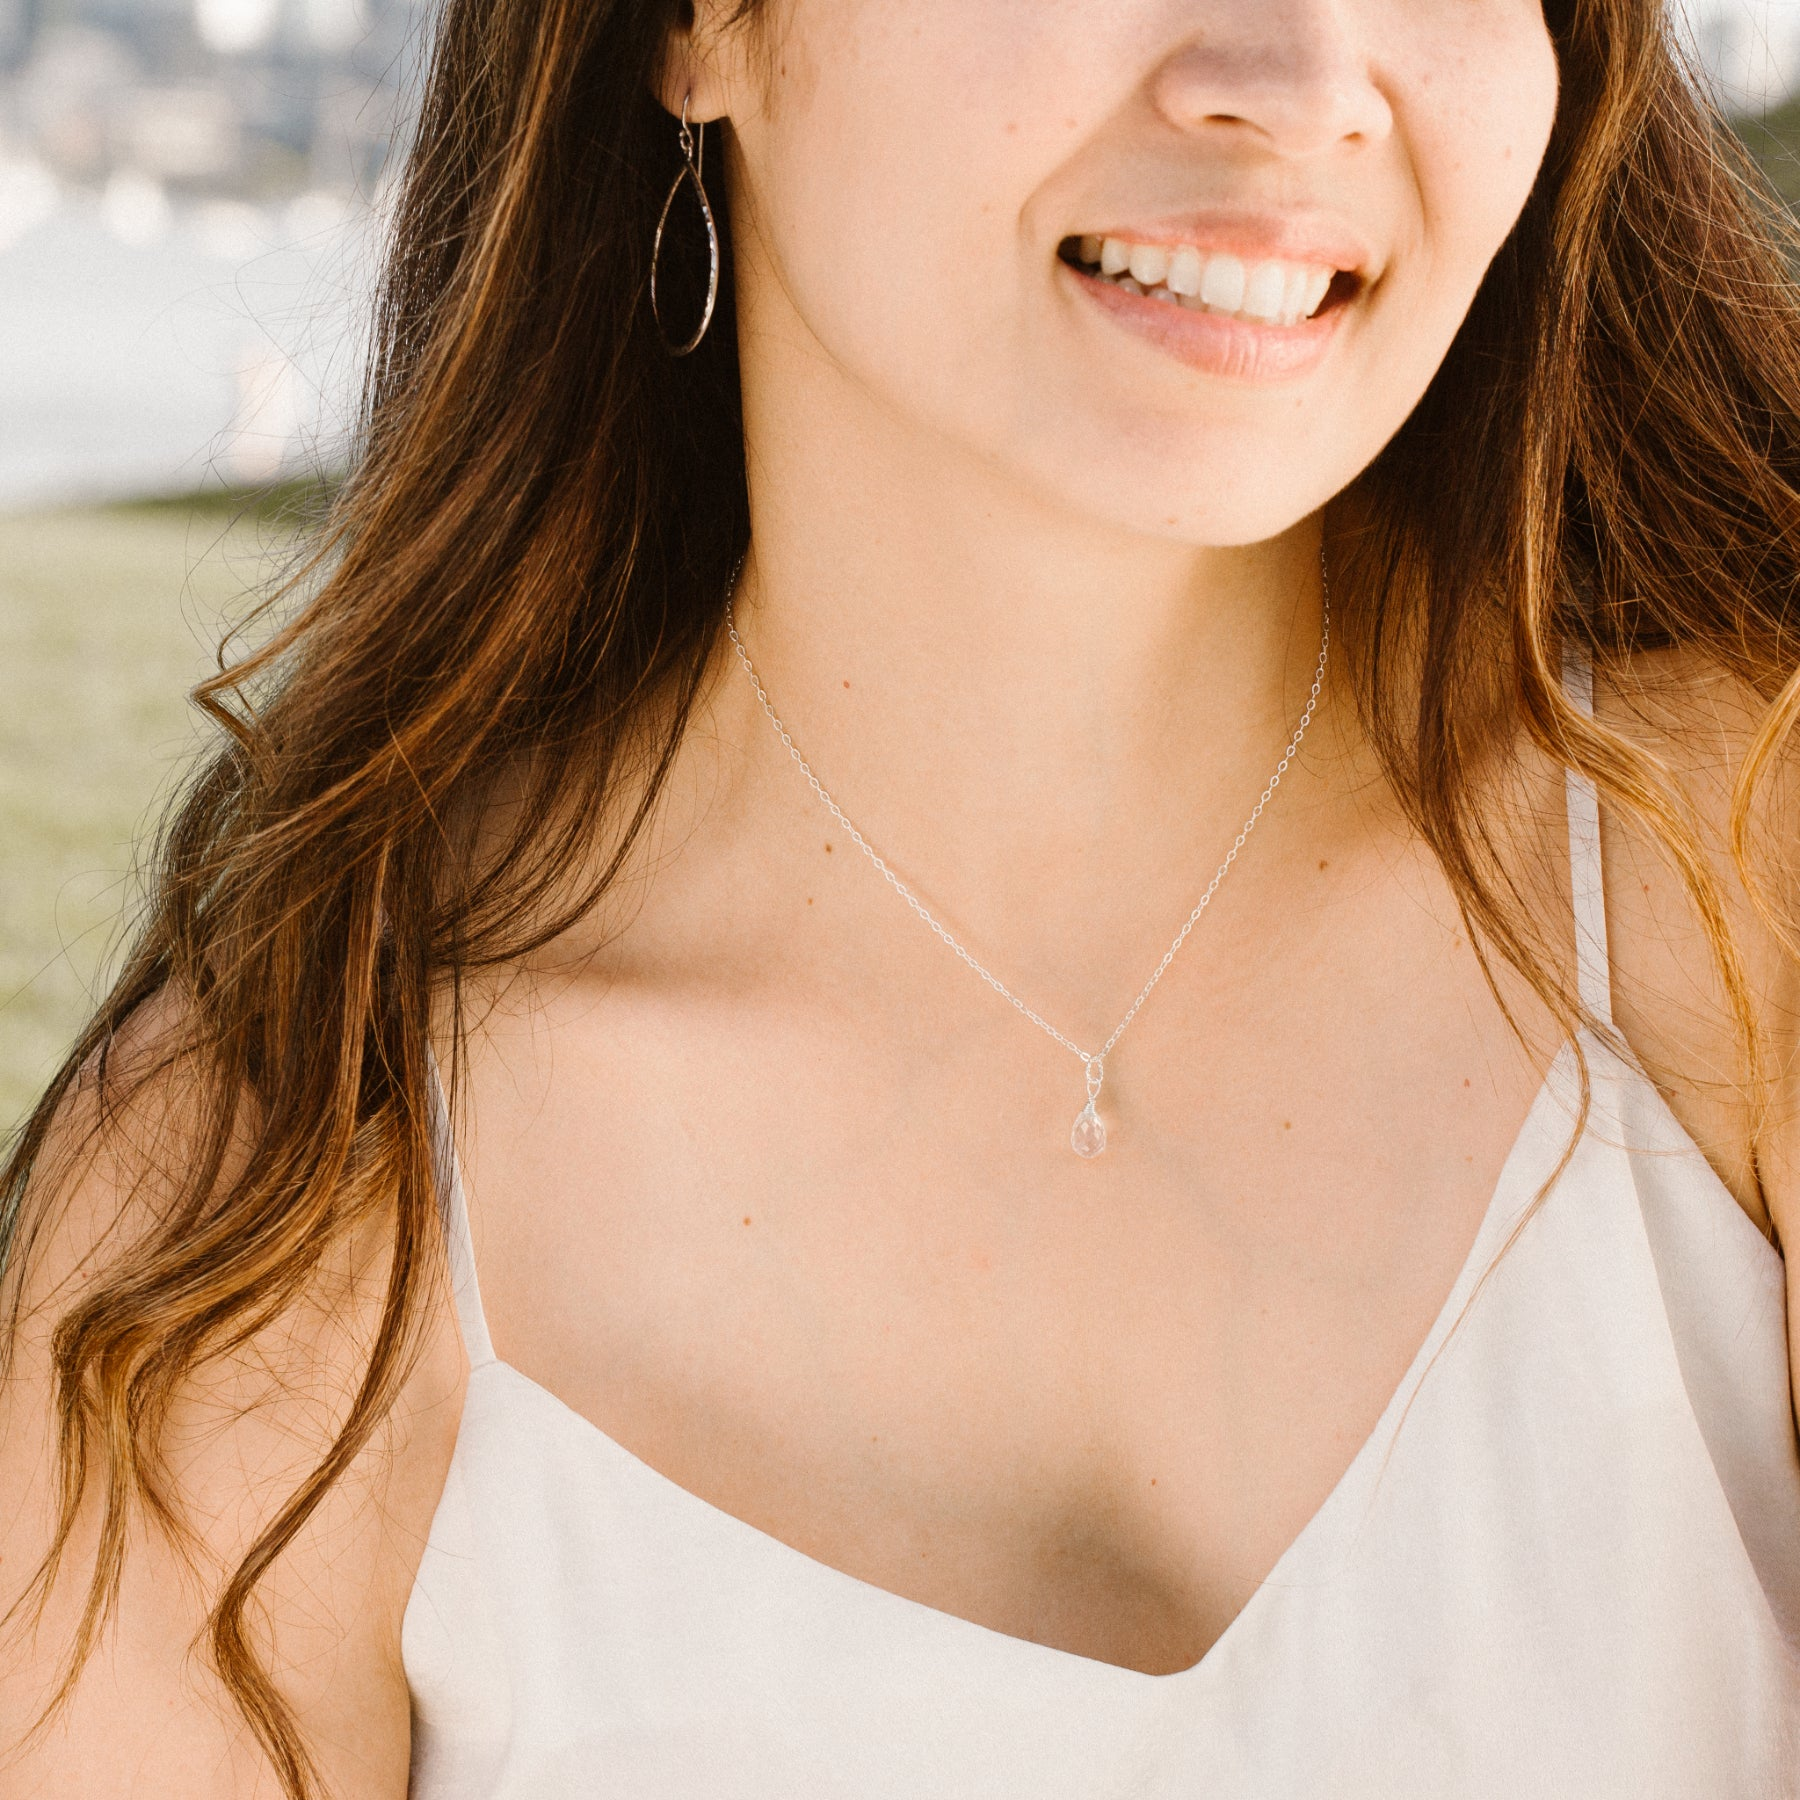 Woman in White Shirt Smiling and Wearing Teardrop-shaped Rose Quartz and Silver Necklace 'You Are Loved' Model Photo by Asha Blooms